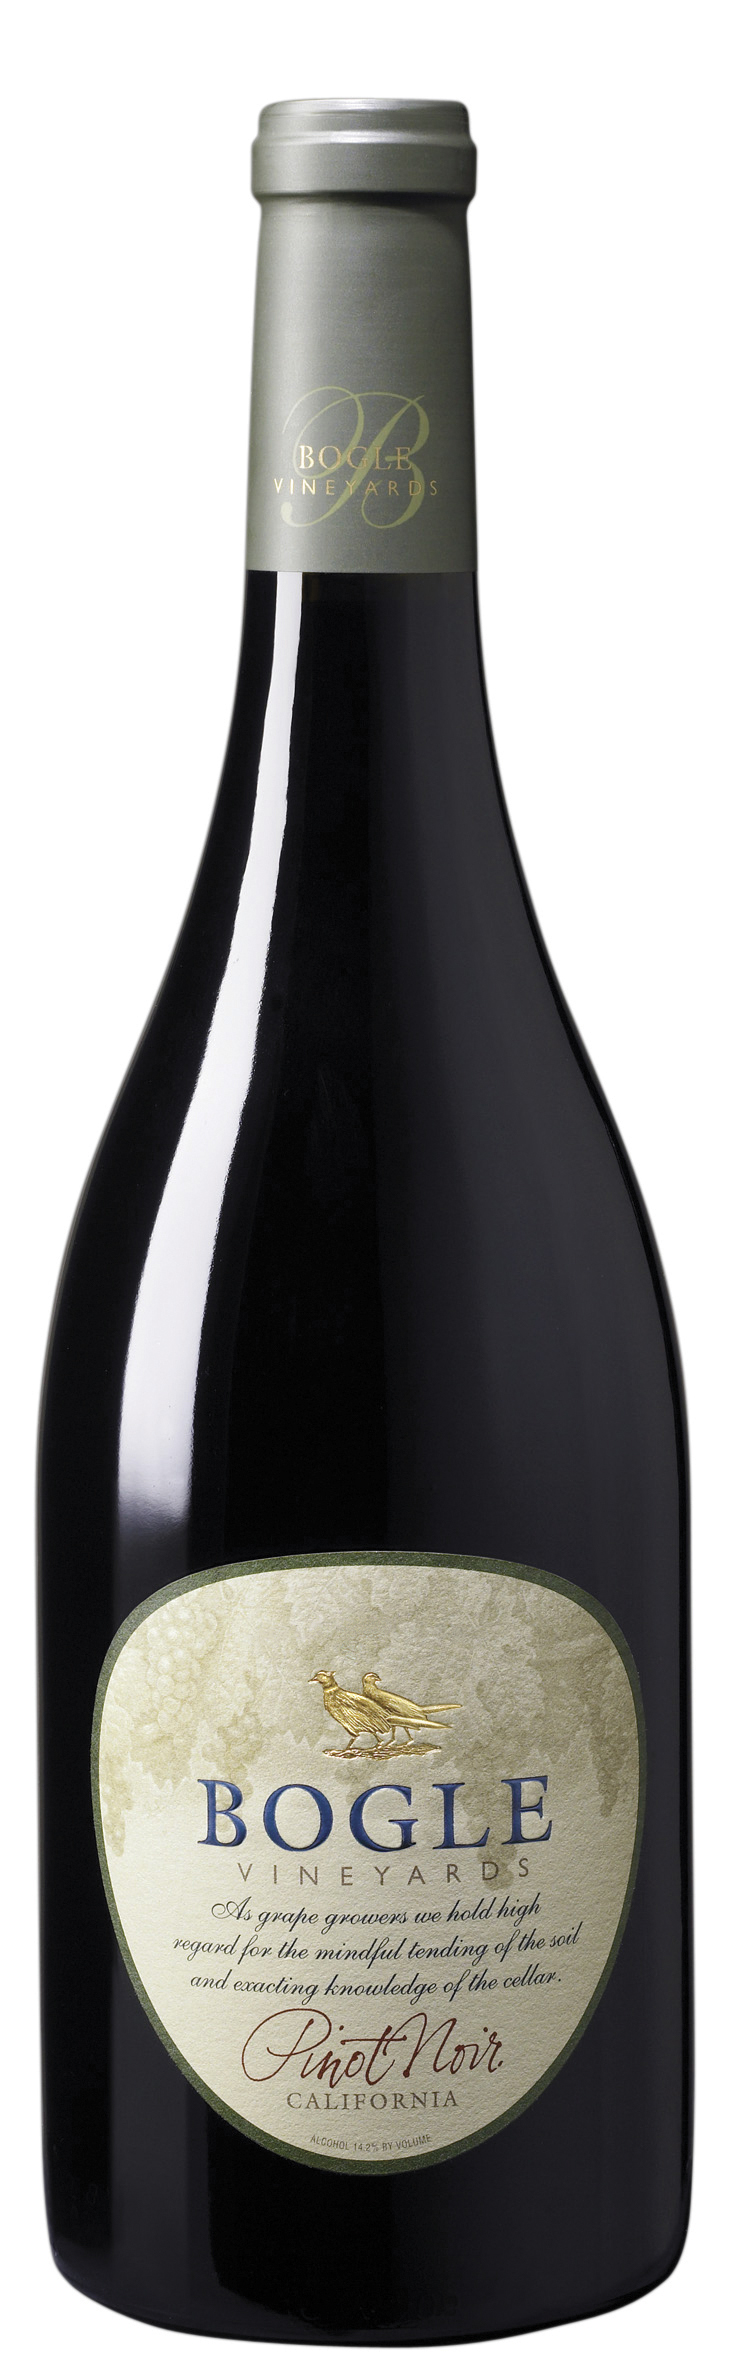 2013 Pinot Noir Bogle Vineyards Kalifornien